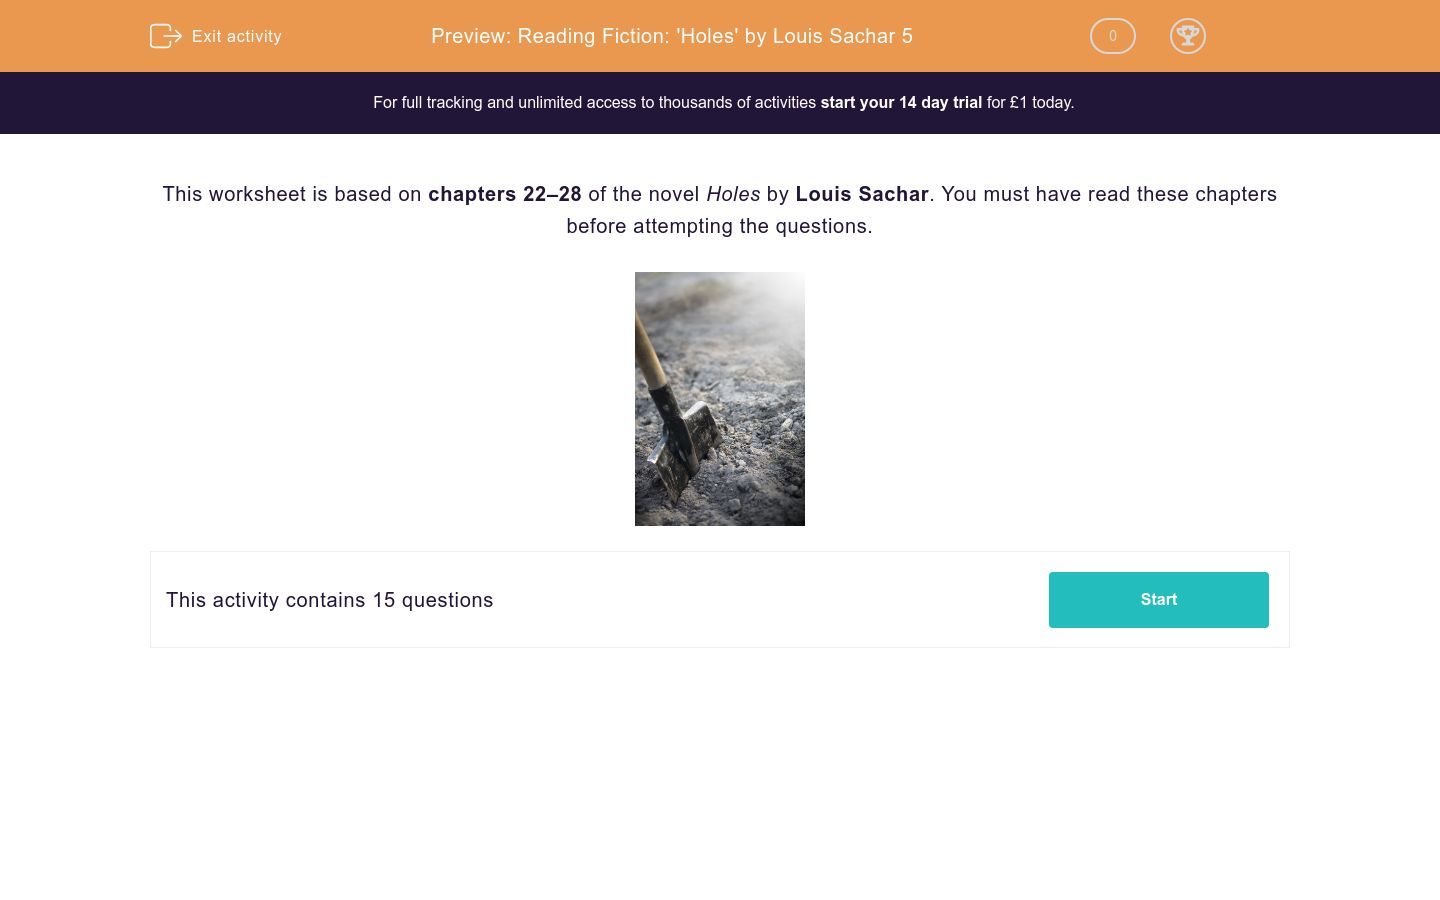 'Reading Fiction: 'Holes' by Louis Sachar 5' worksheet